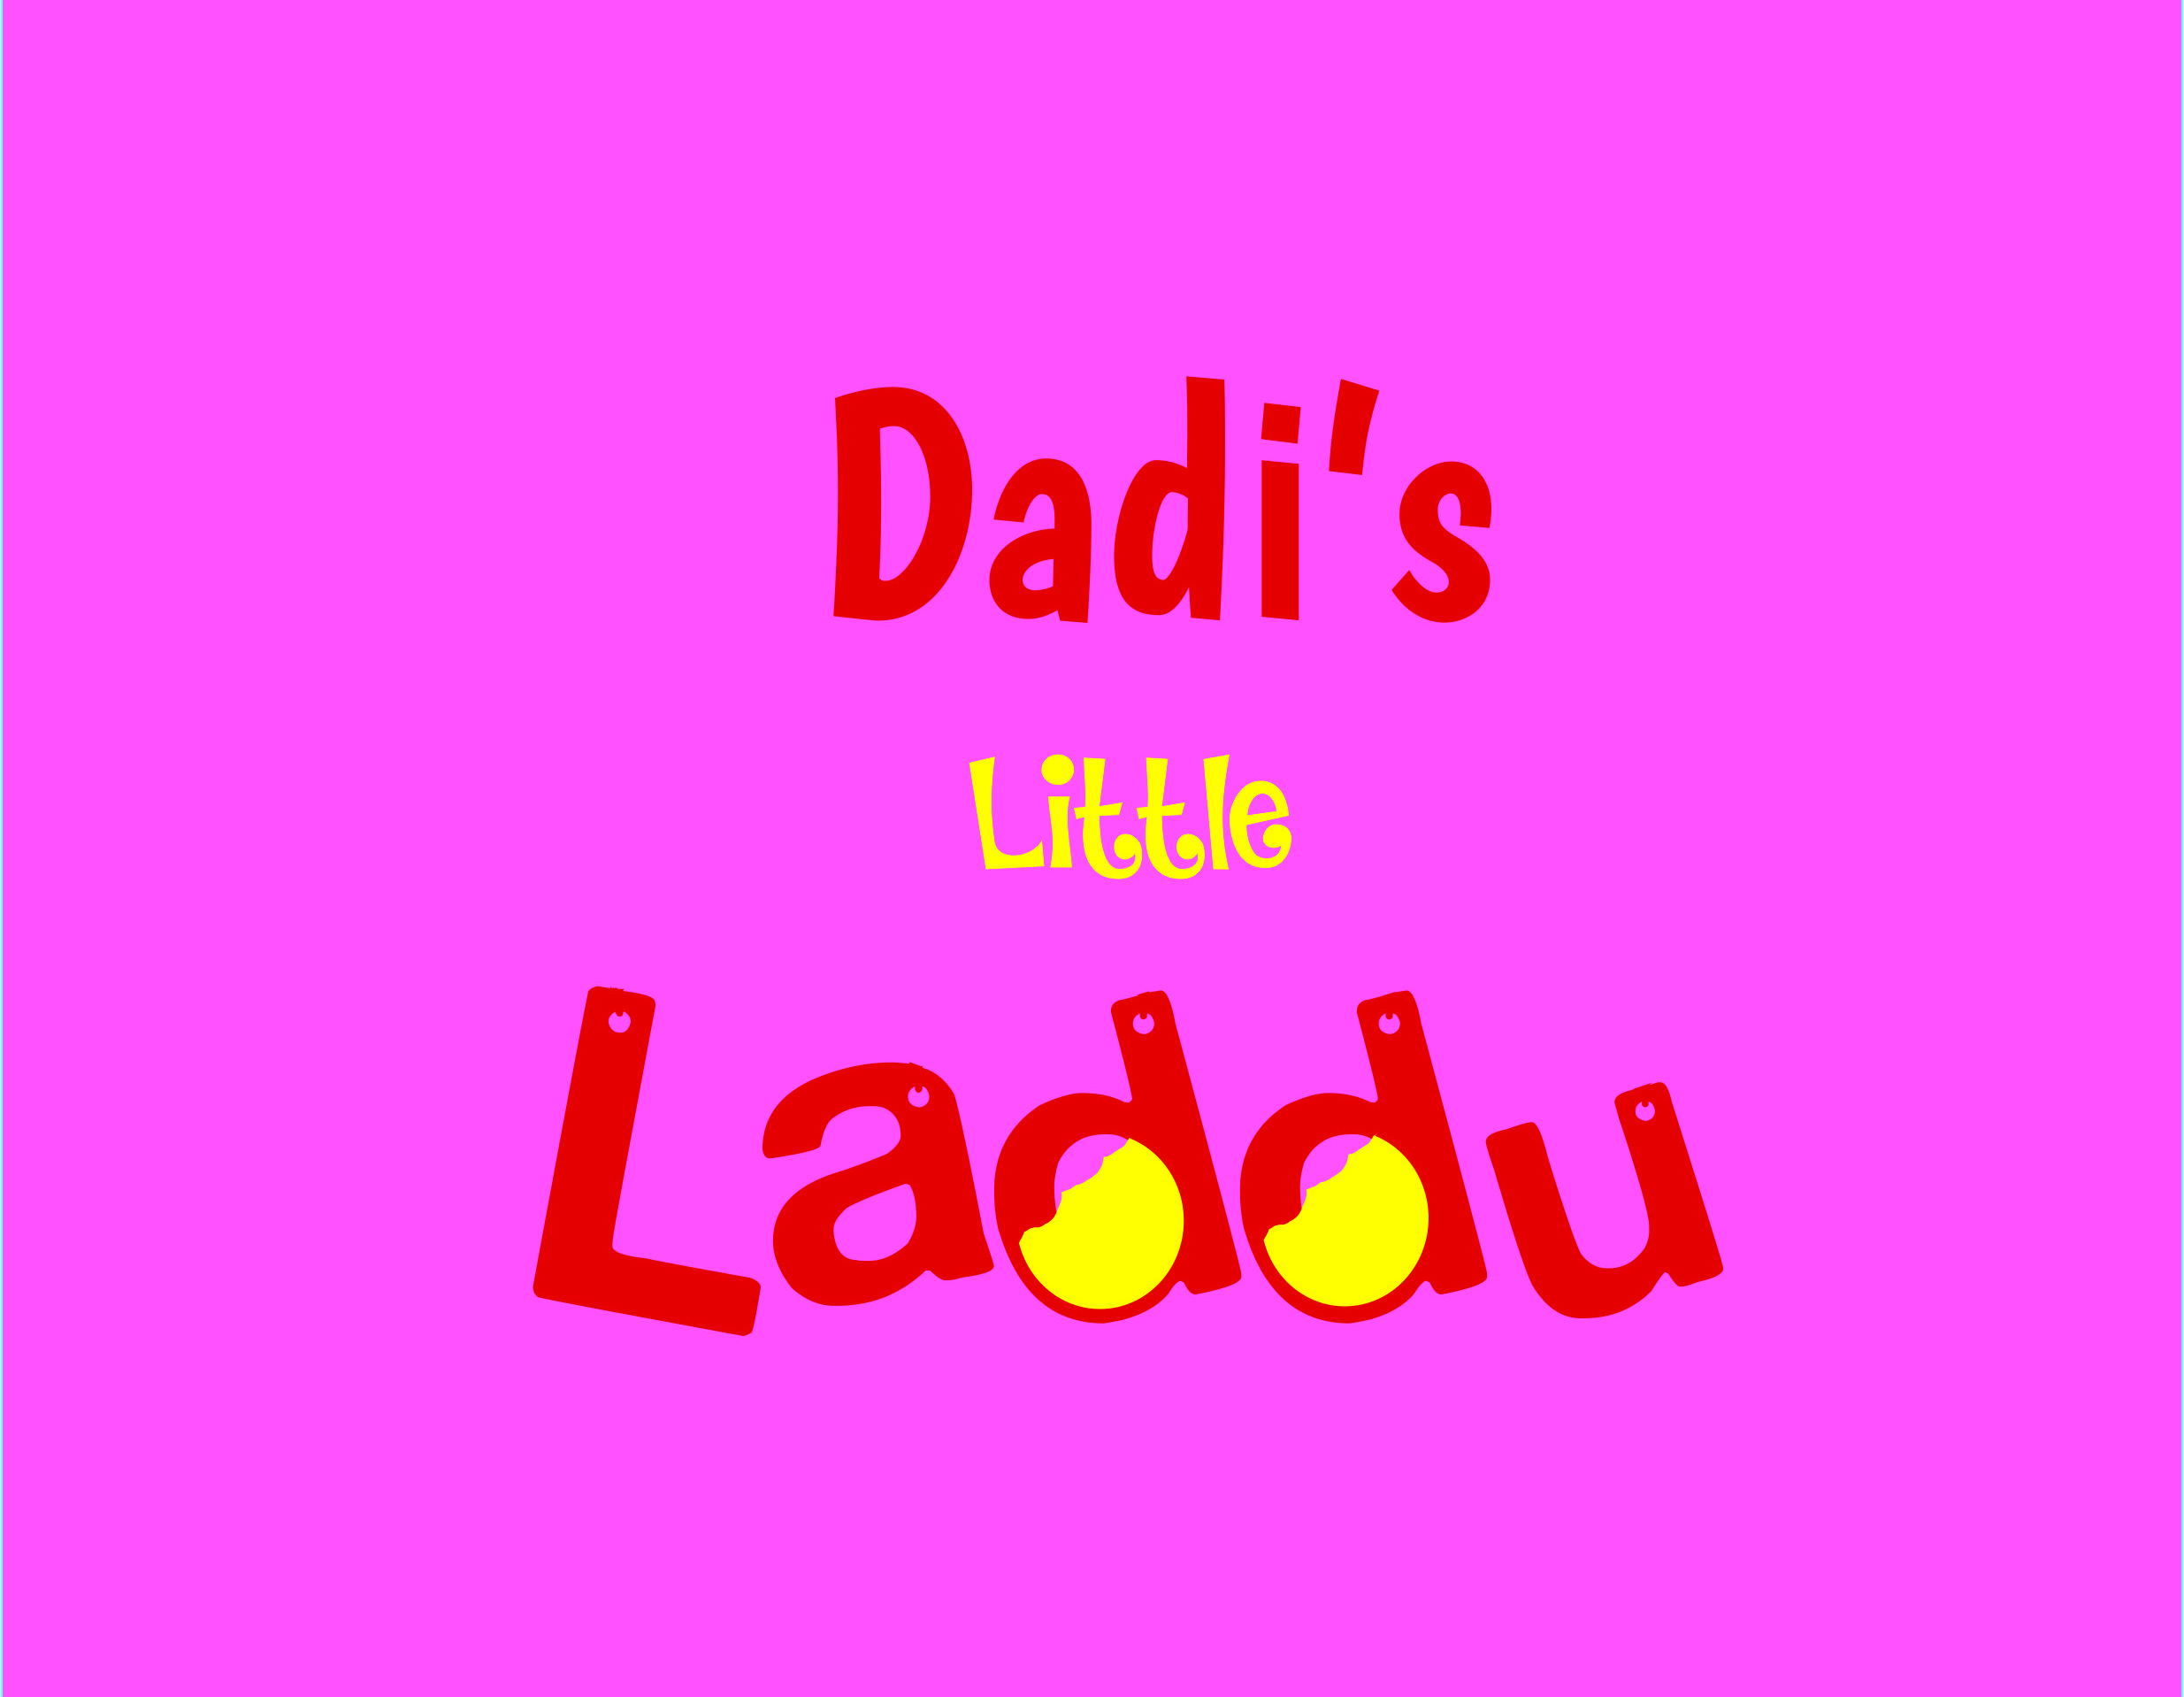 DADIS-LITTLE-LADDU-P.jpg